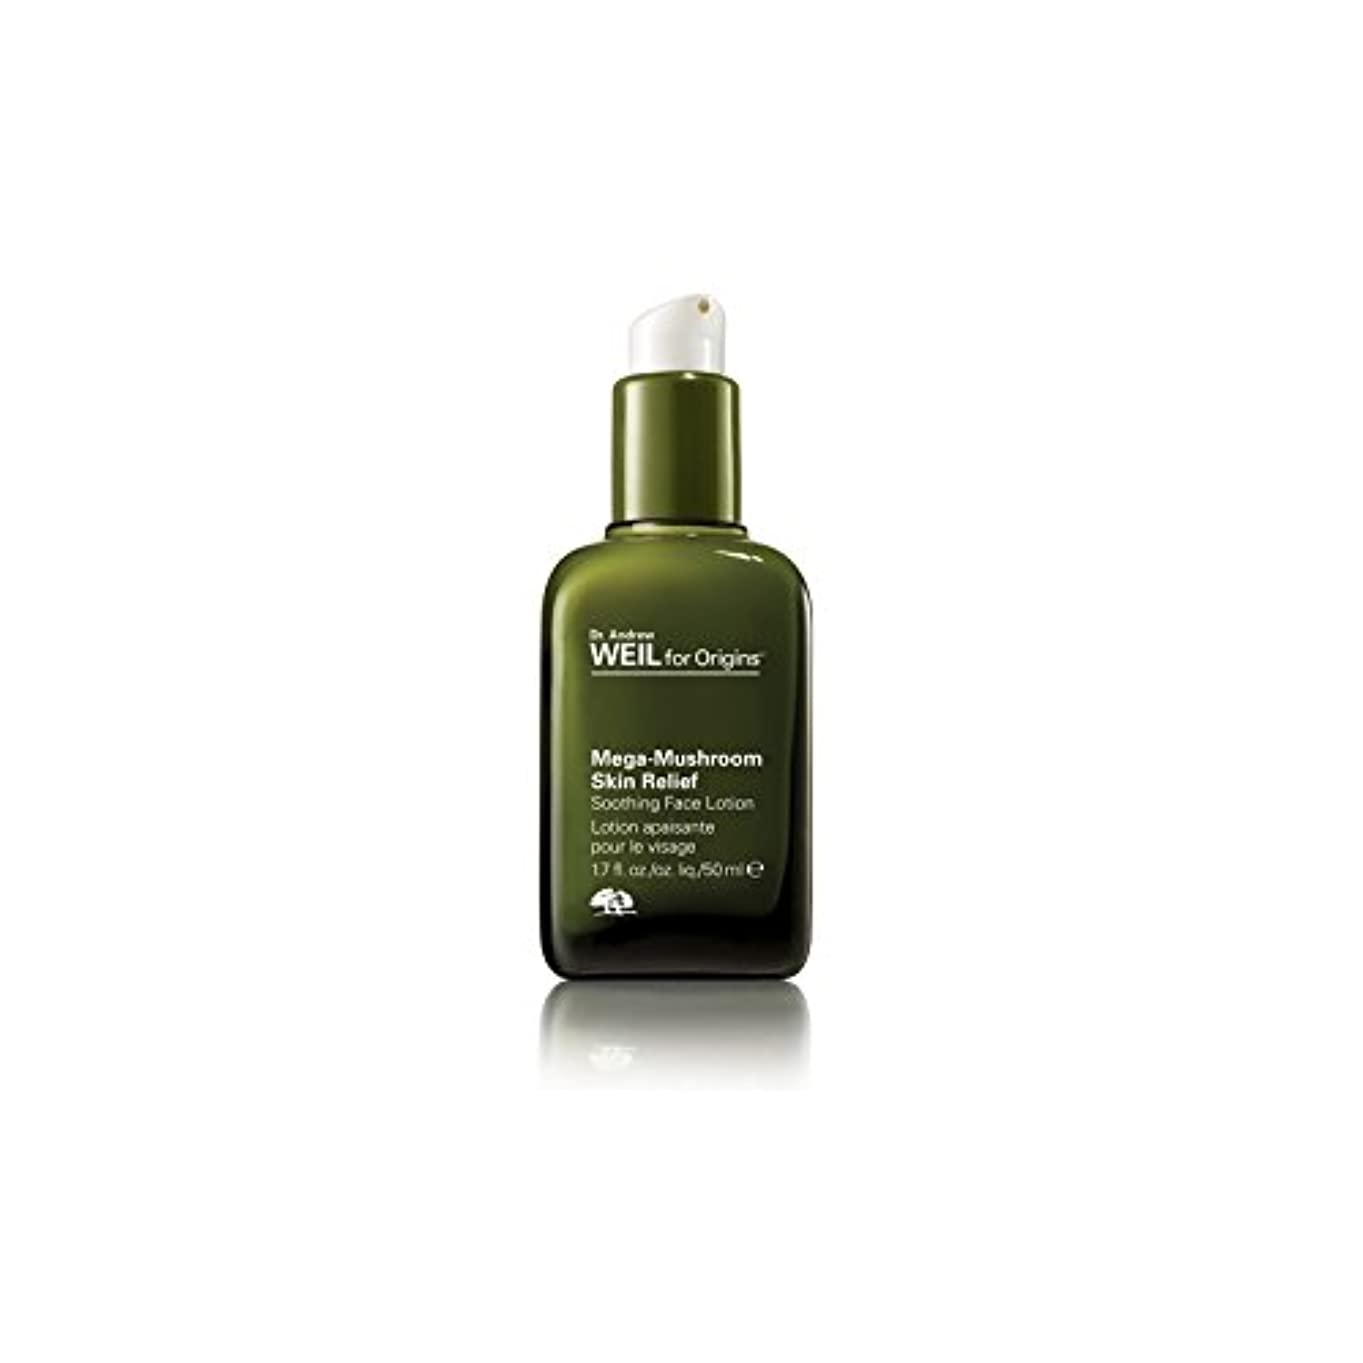 Origins Dr. Andrew Weil For Origins Mega-Mushroom Skin Relief Soothing Face Lotion 50ml (Pack of 6) - 起源アンドルー?ワイル...